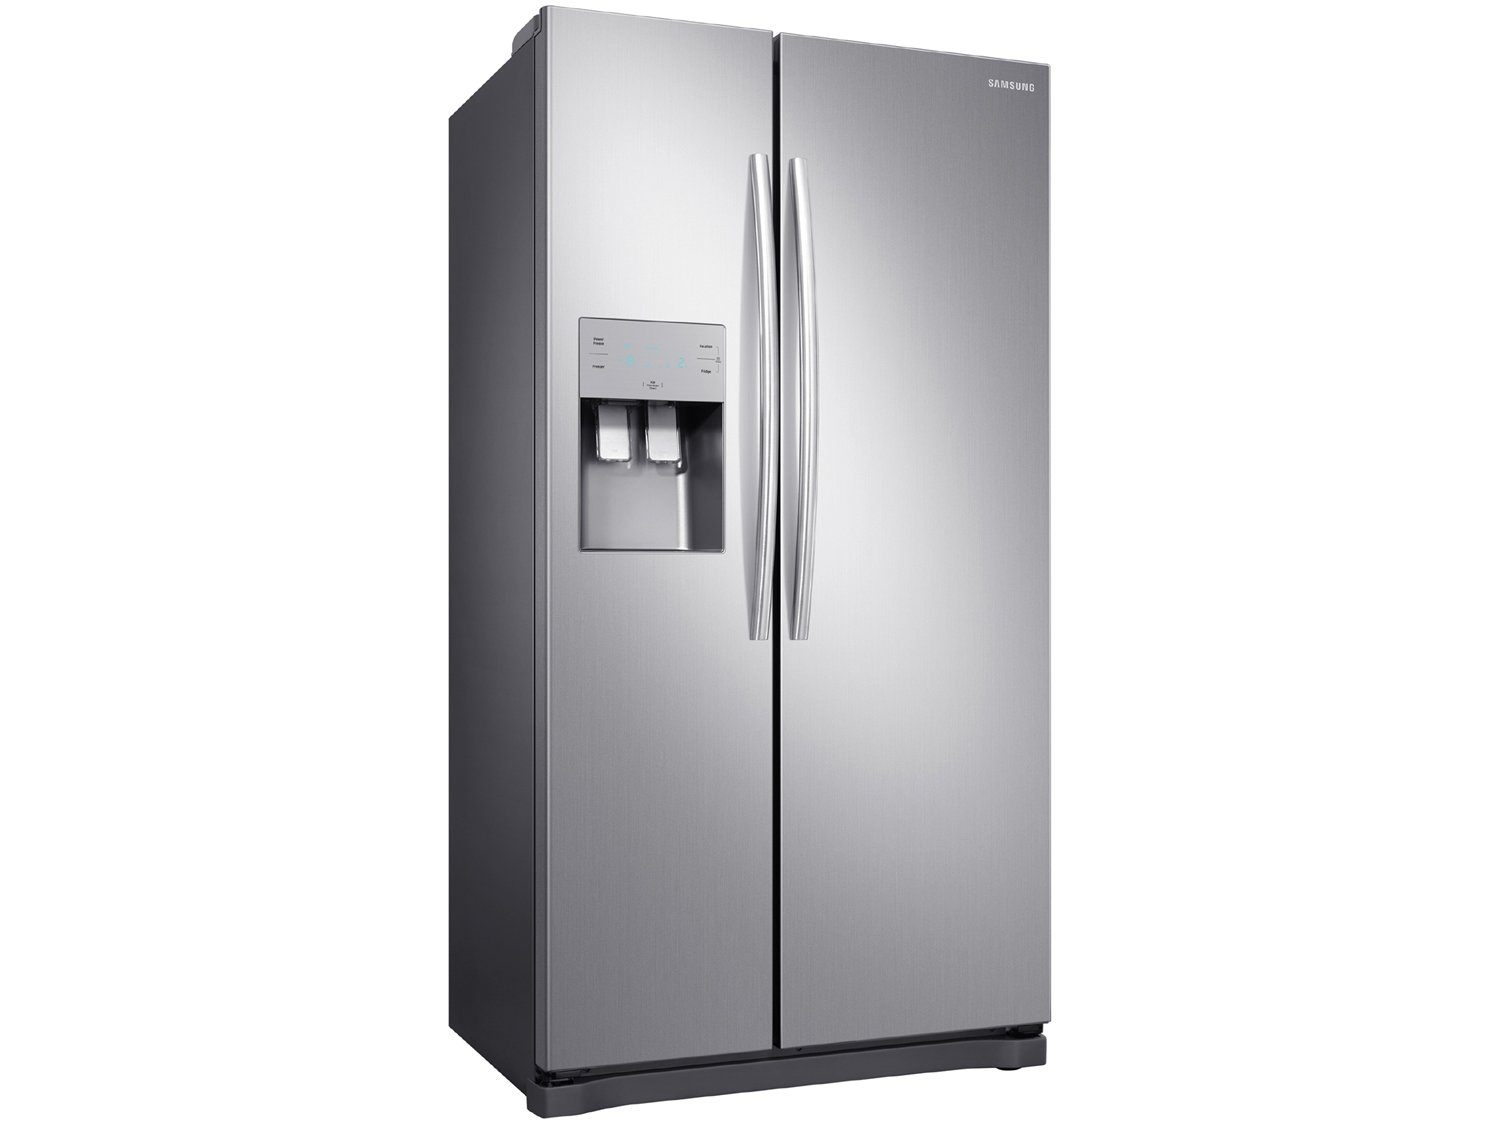 Refrigerador Samsung RS50N Side by Side Inox Look - 501L - 110v - 4